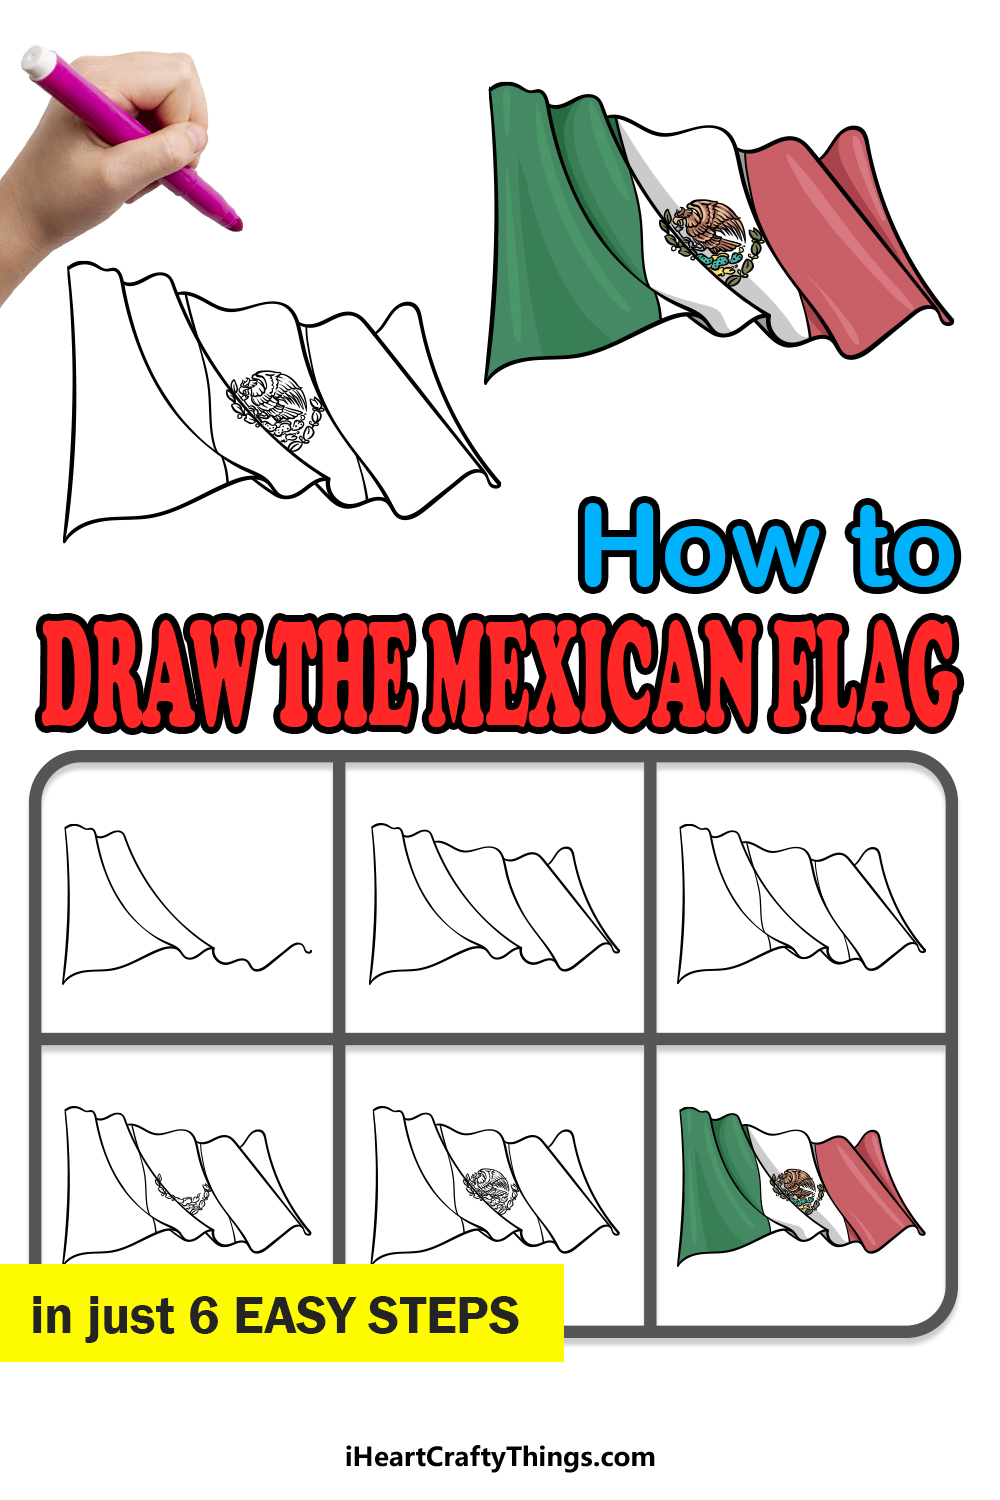 how to draw Mexican flag in 6 easy steps